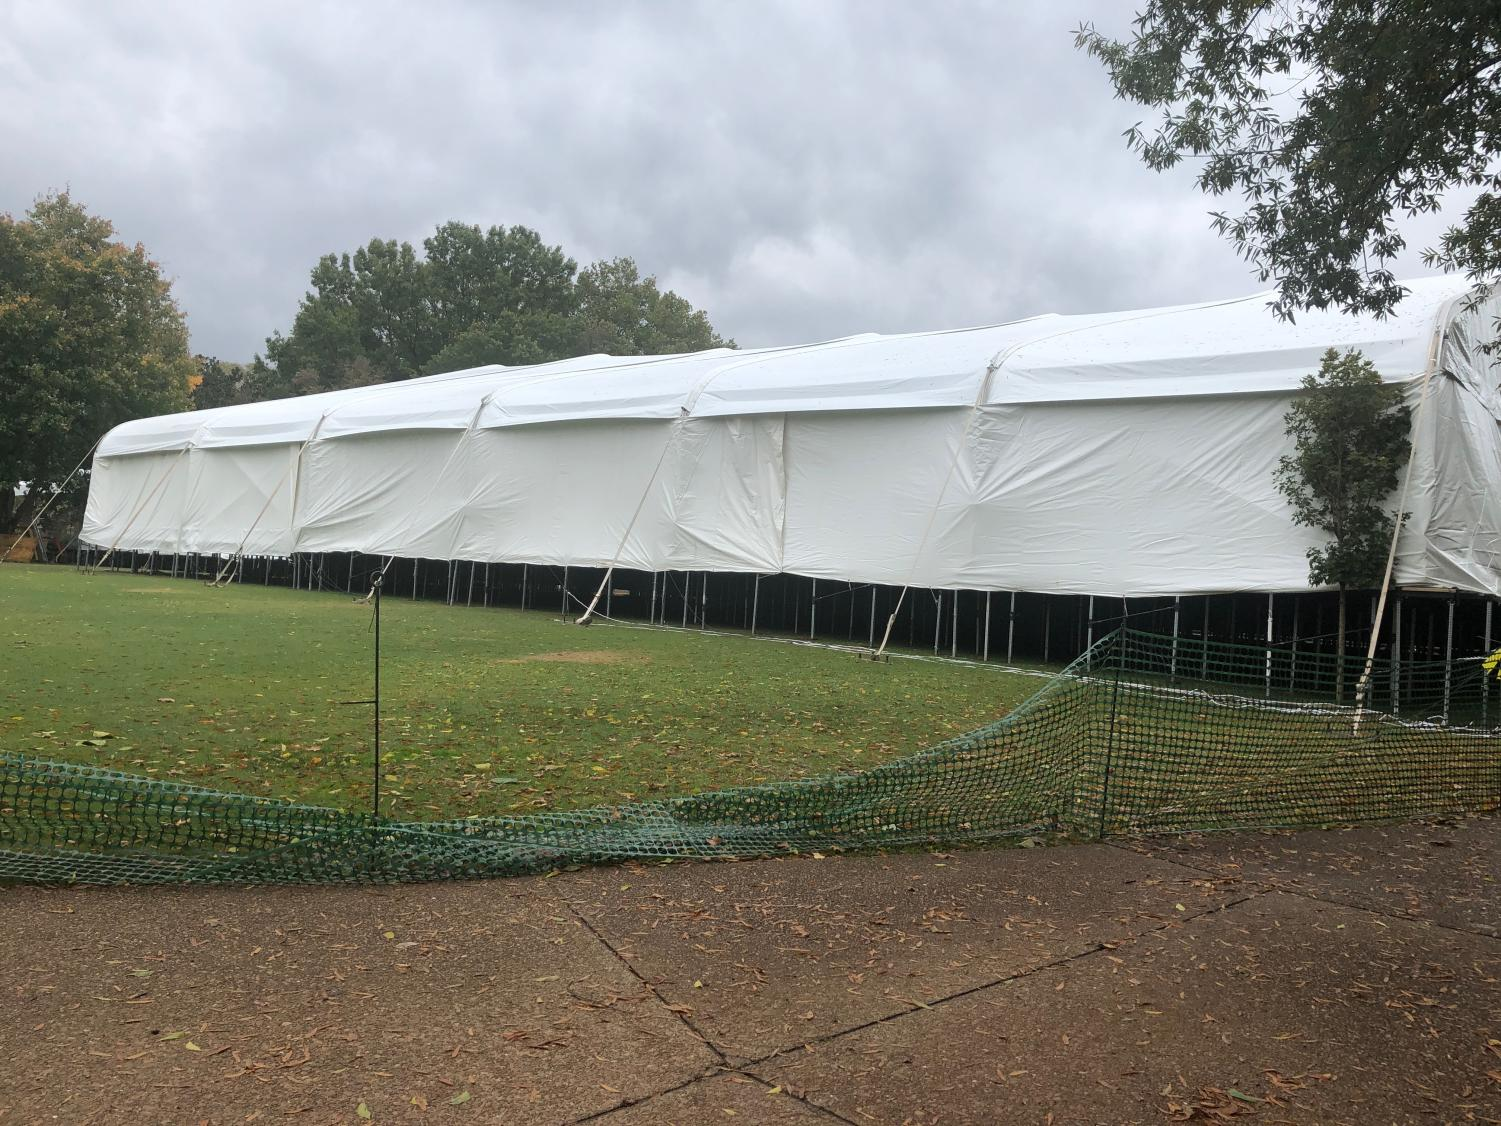 The structure is both covered and raised above Alumni Lawn. (Photo by Rachel Friedman)